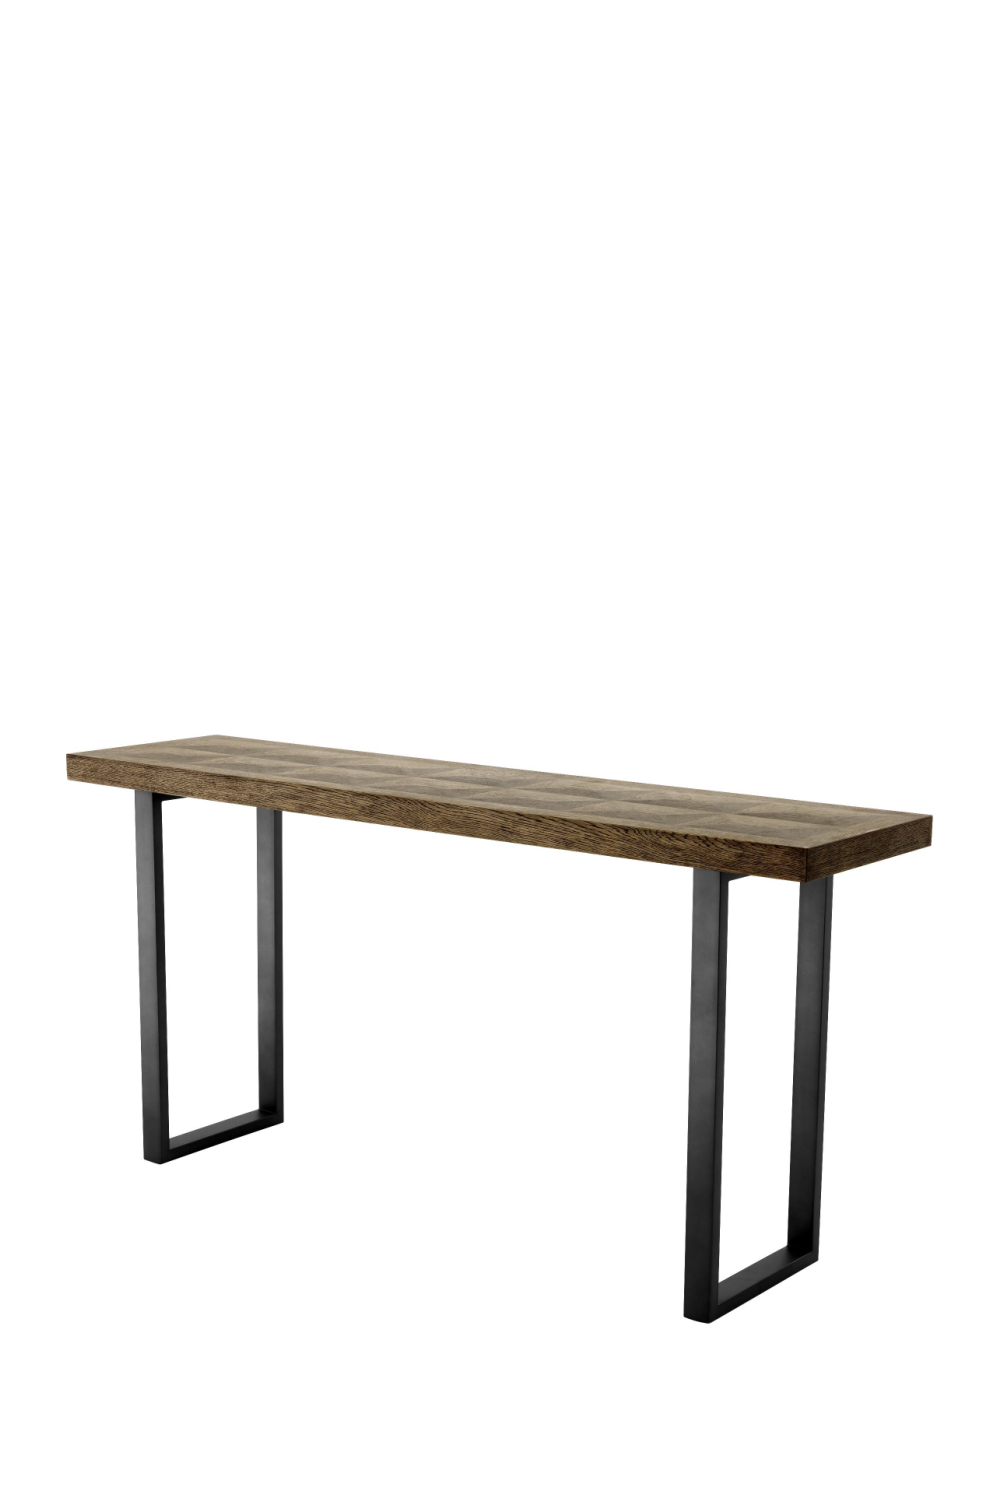 Bronze Oak Console Table | Eichholtz Gregorio | Woodfurniture.com